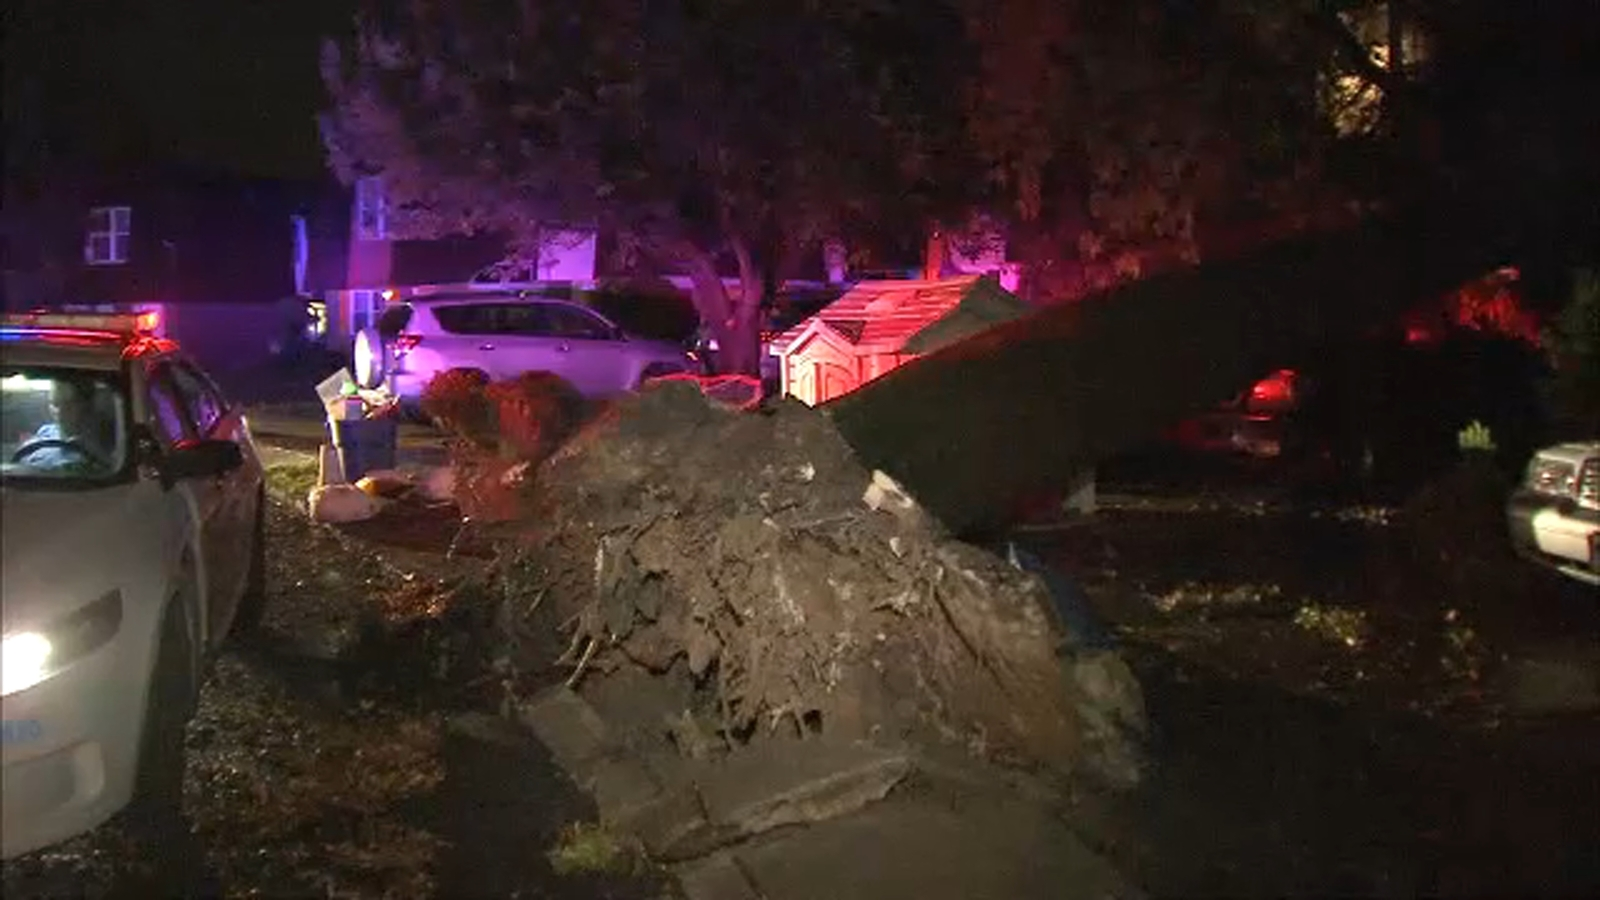 Quickly intensifying storm brings down large tree in Philadelphia